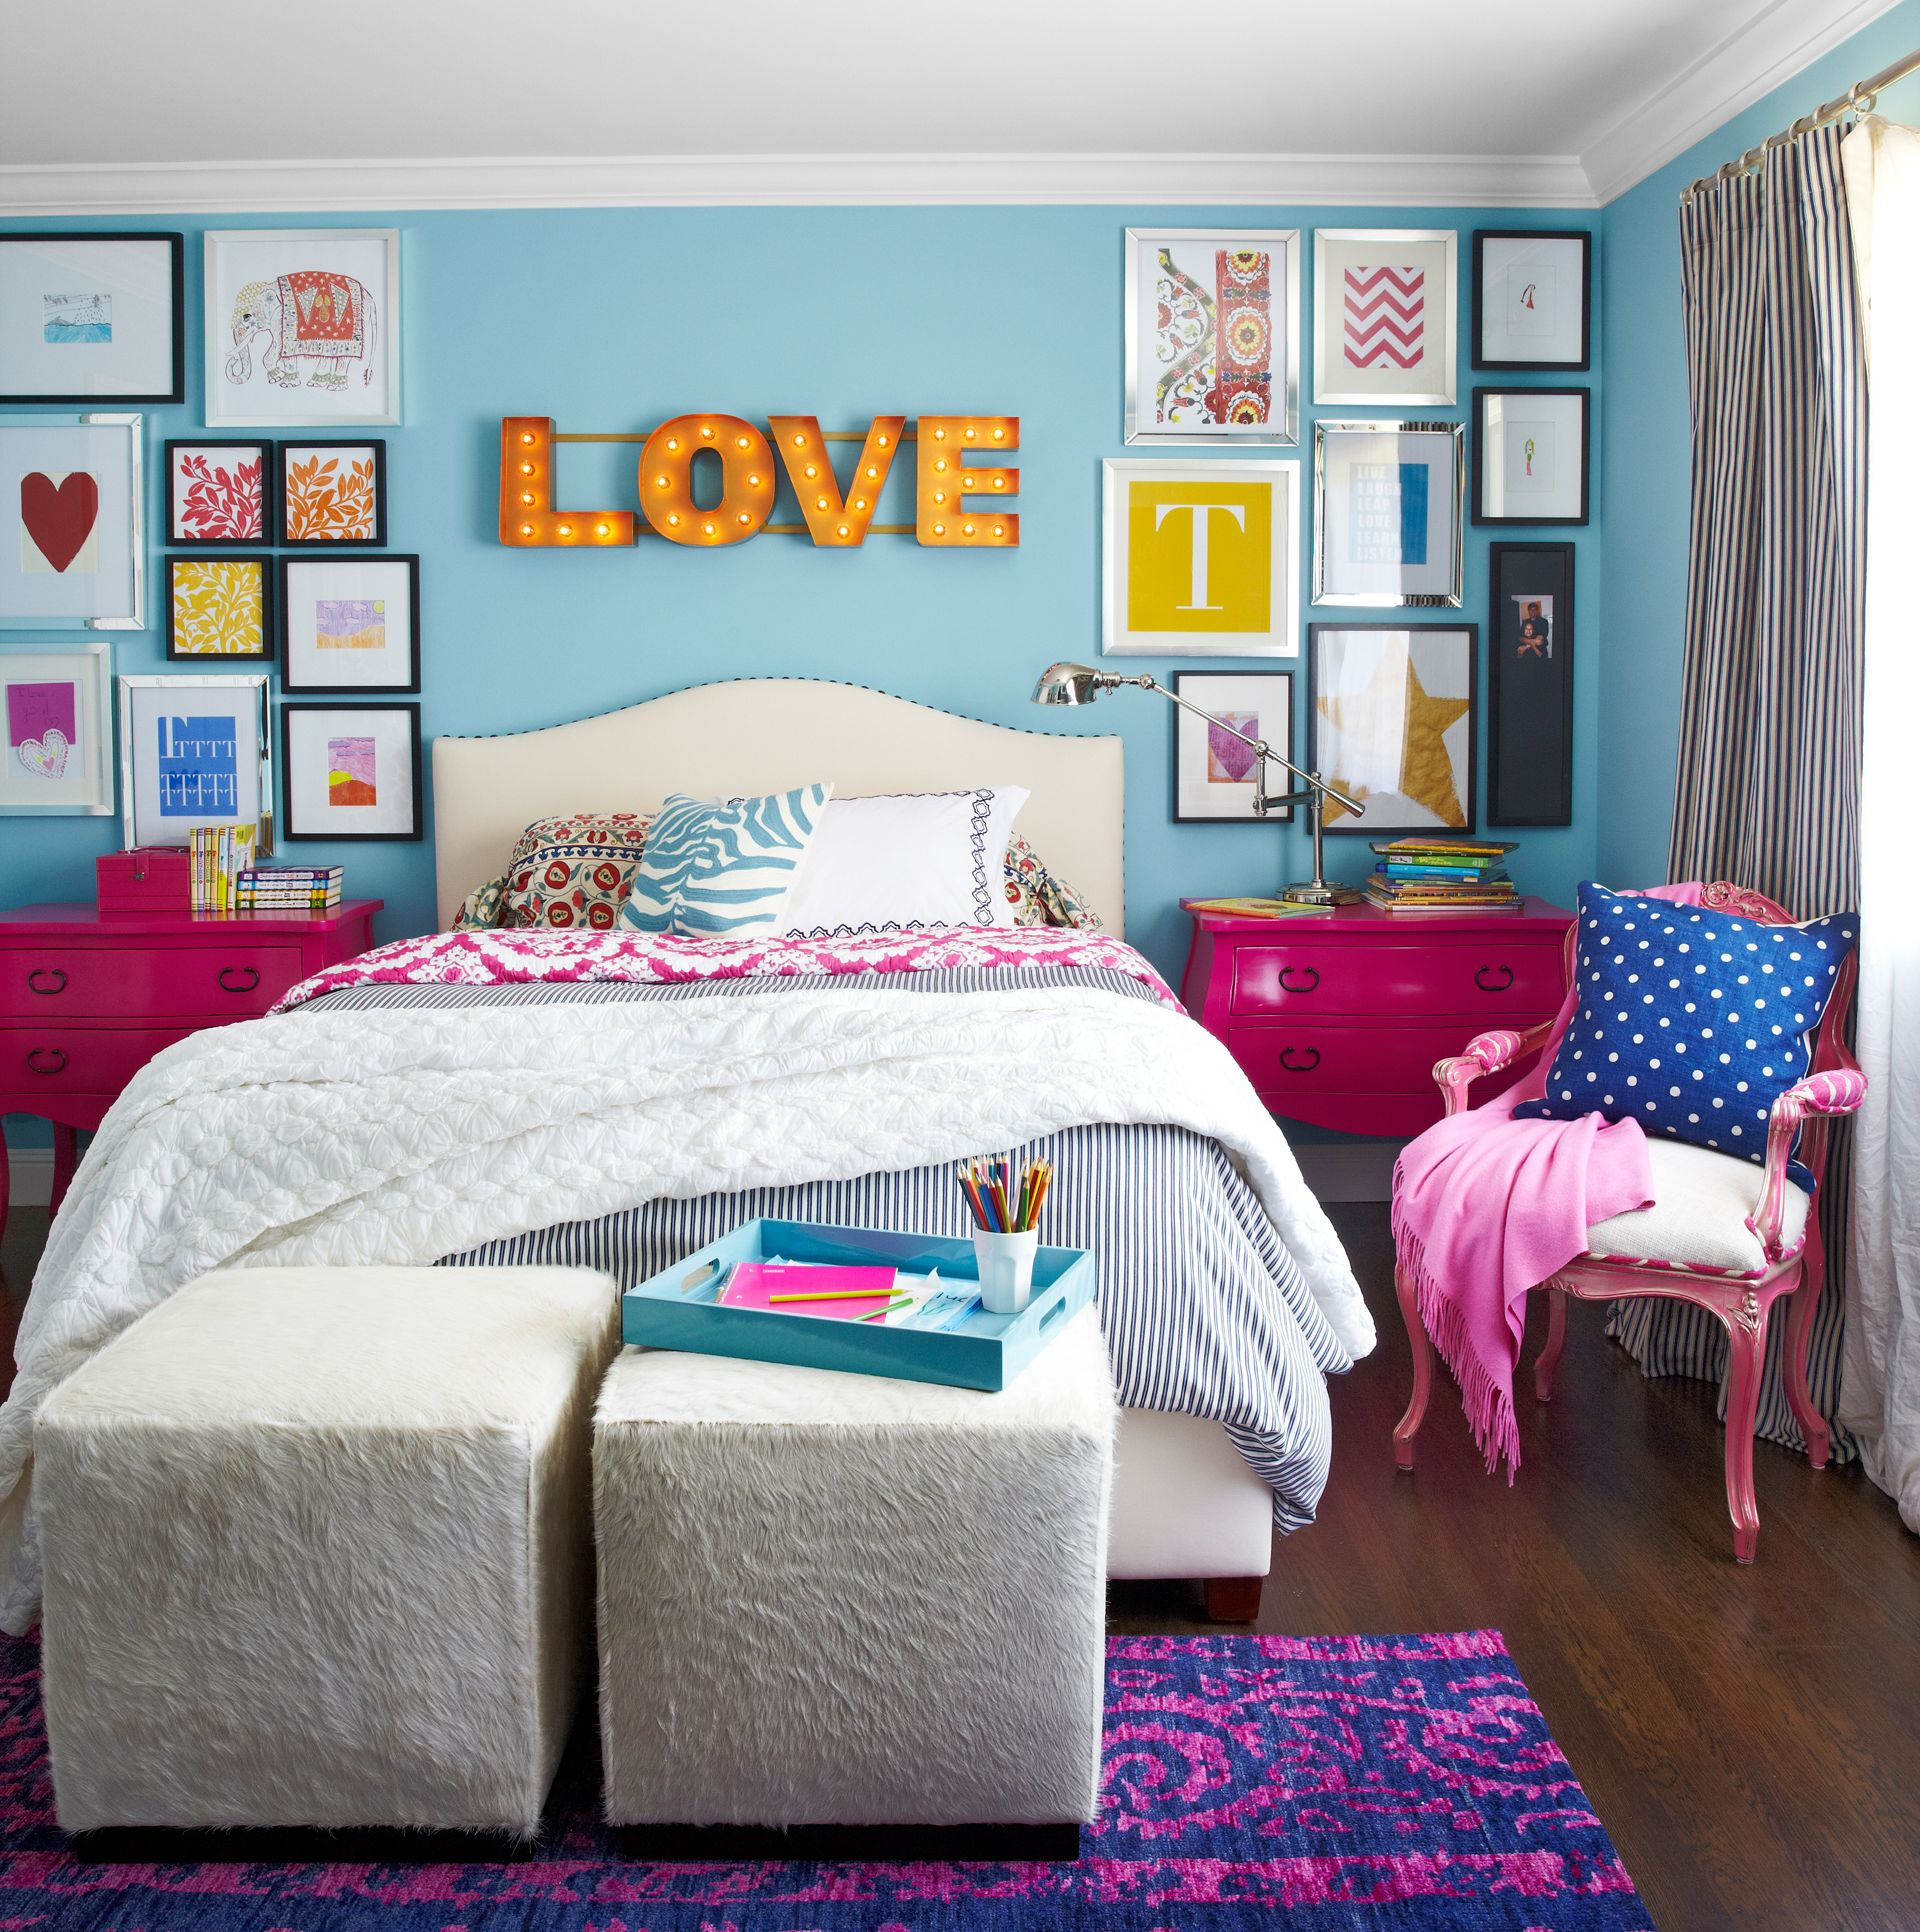 Kids Room Decor - Design Ideas for Childrens Rooms